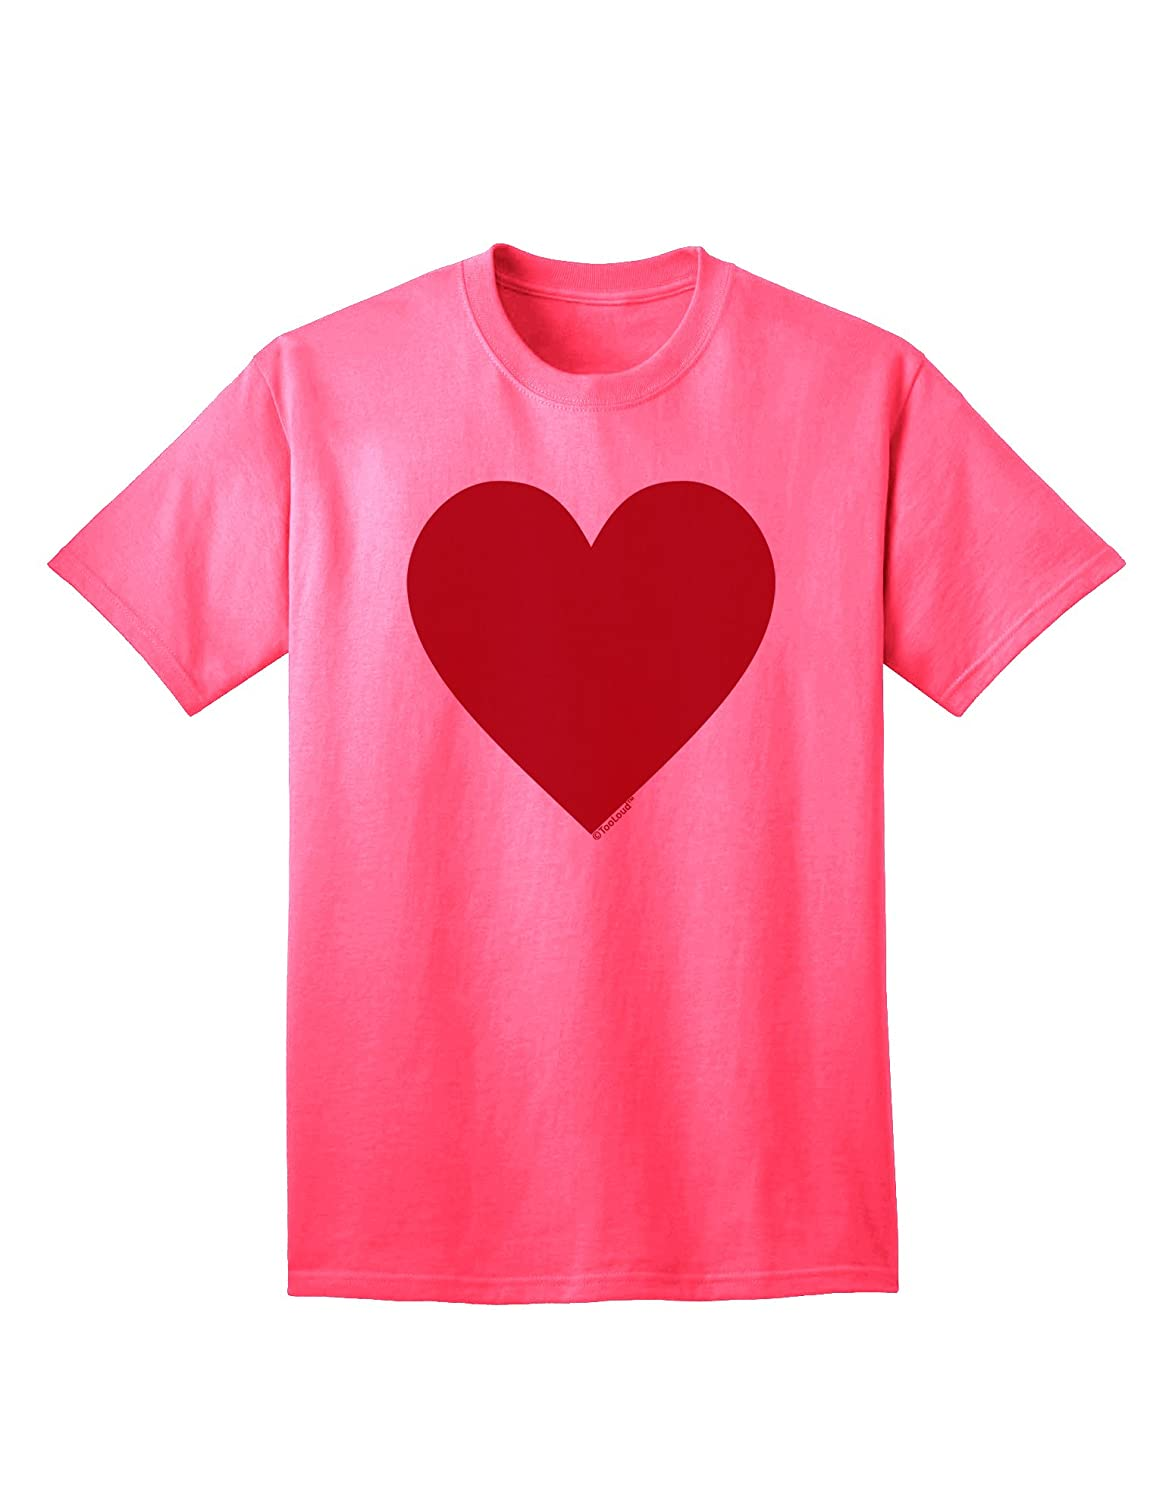 924520949ecd Amazon.com  TooLoud Big Red Heart Valentine s Day Adult T-Shirt  Clothing